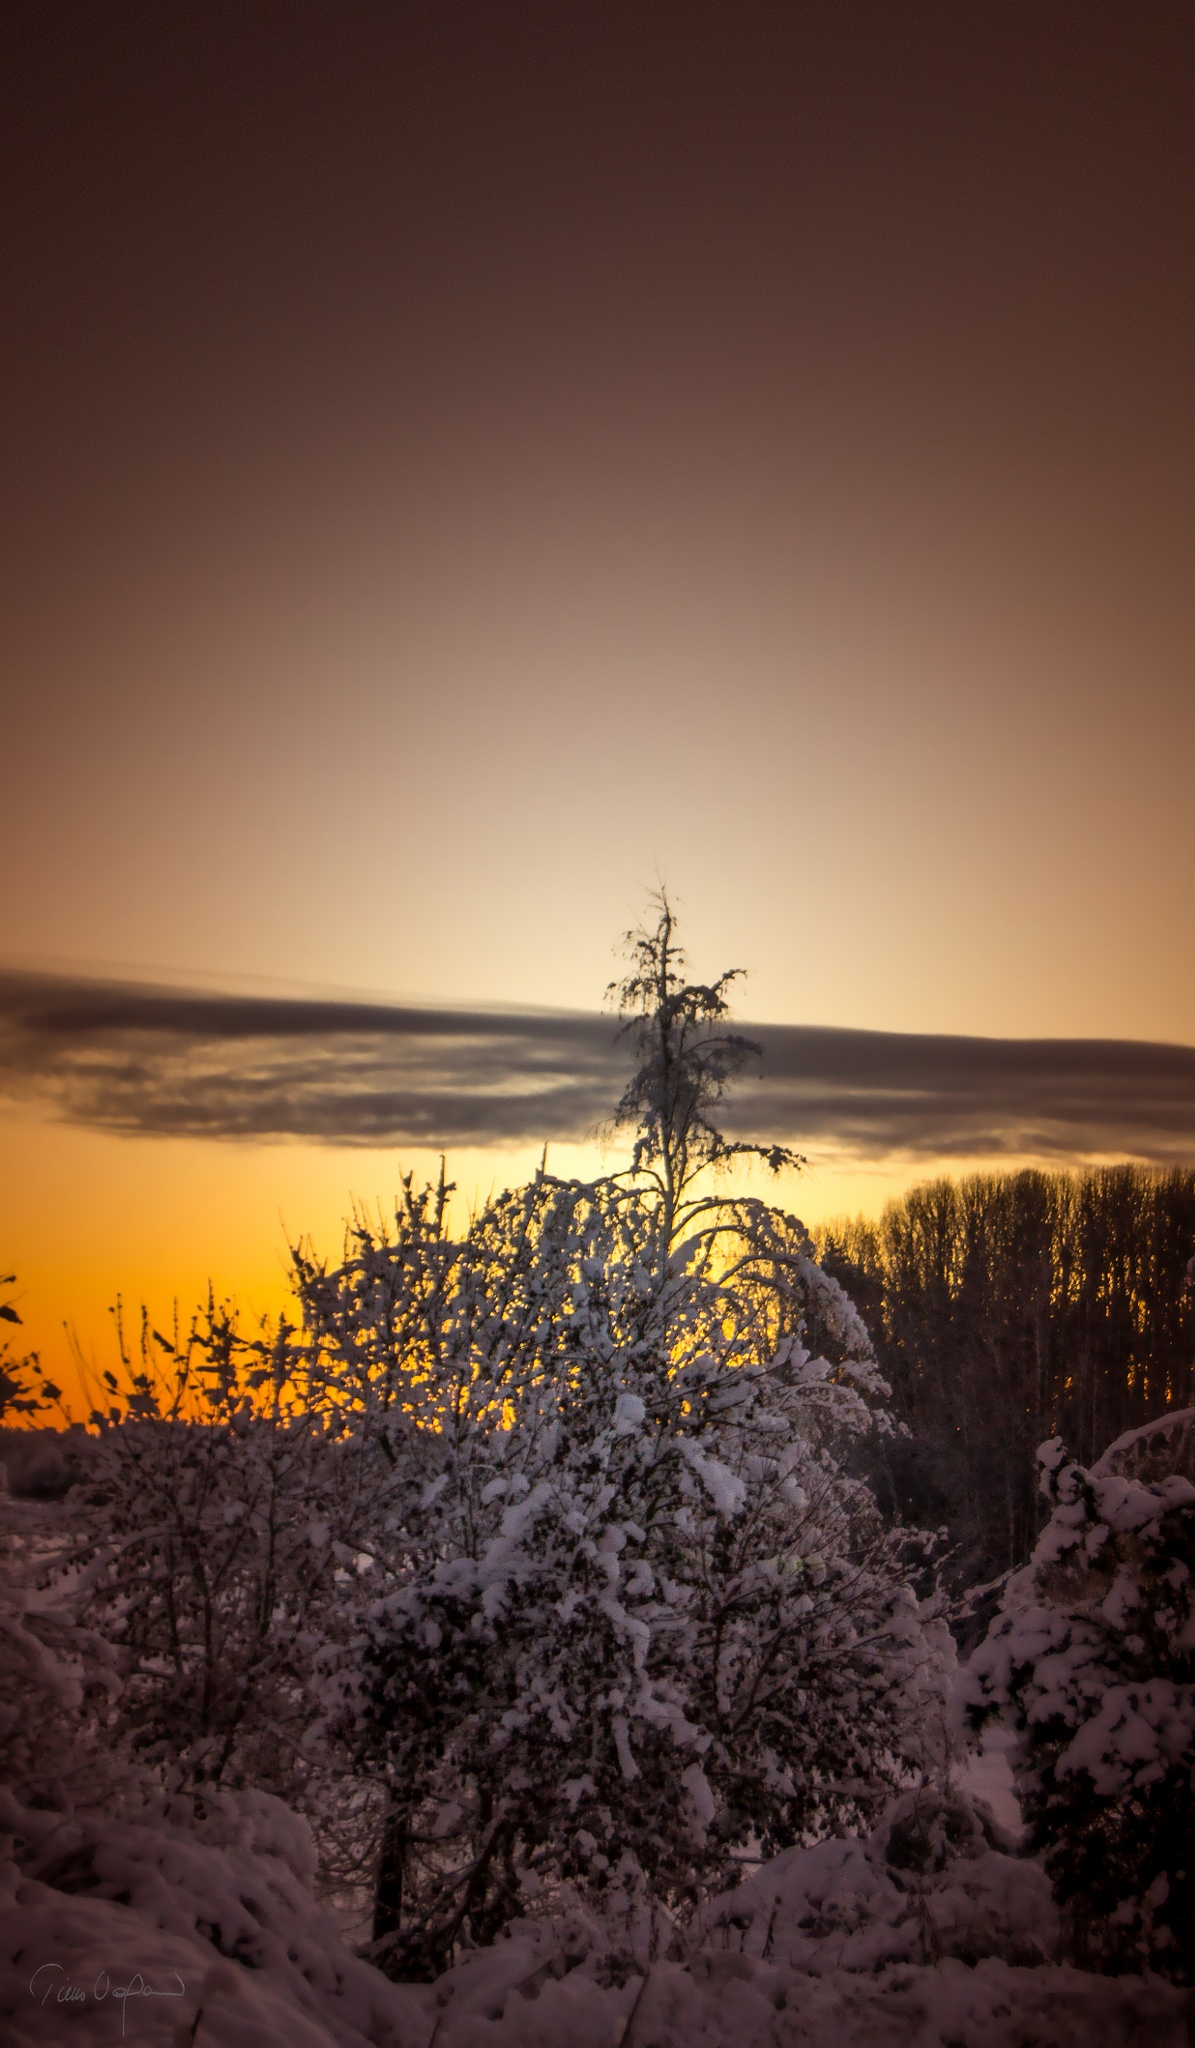 Untitled by Timo V